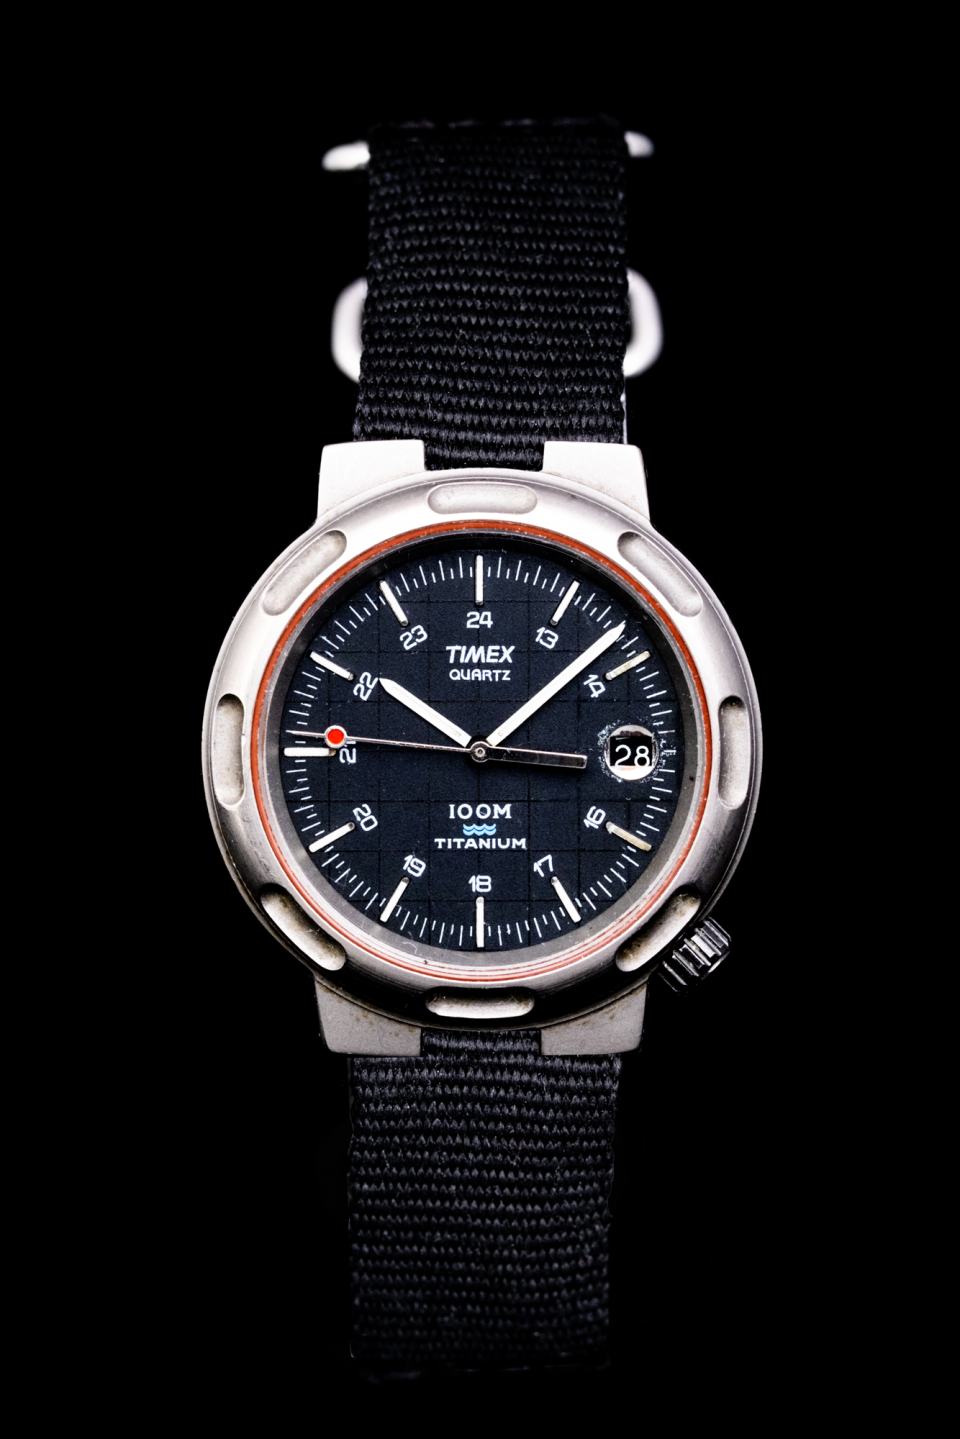 """This is the """"sportier"""" version of the Timex Titanium Sport watch shown above. This watch was advertised in aviation magazines with backdrops containing military fighter jets—effective advertising for me as a young wannabe pilot who made this one of my early grail watches."""